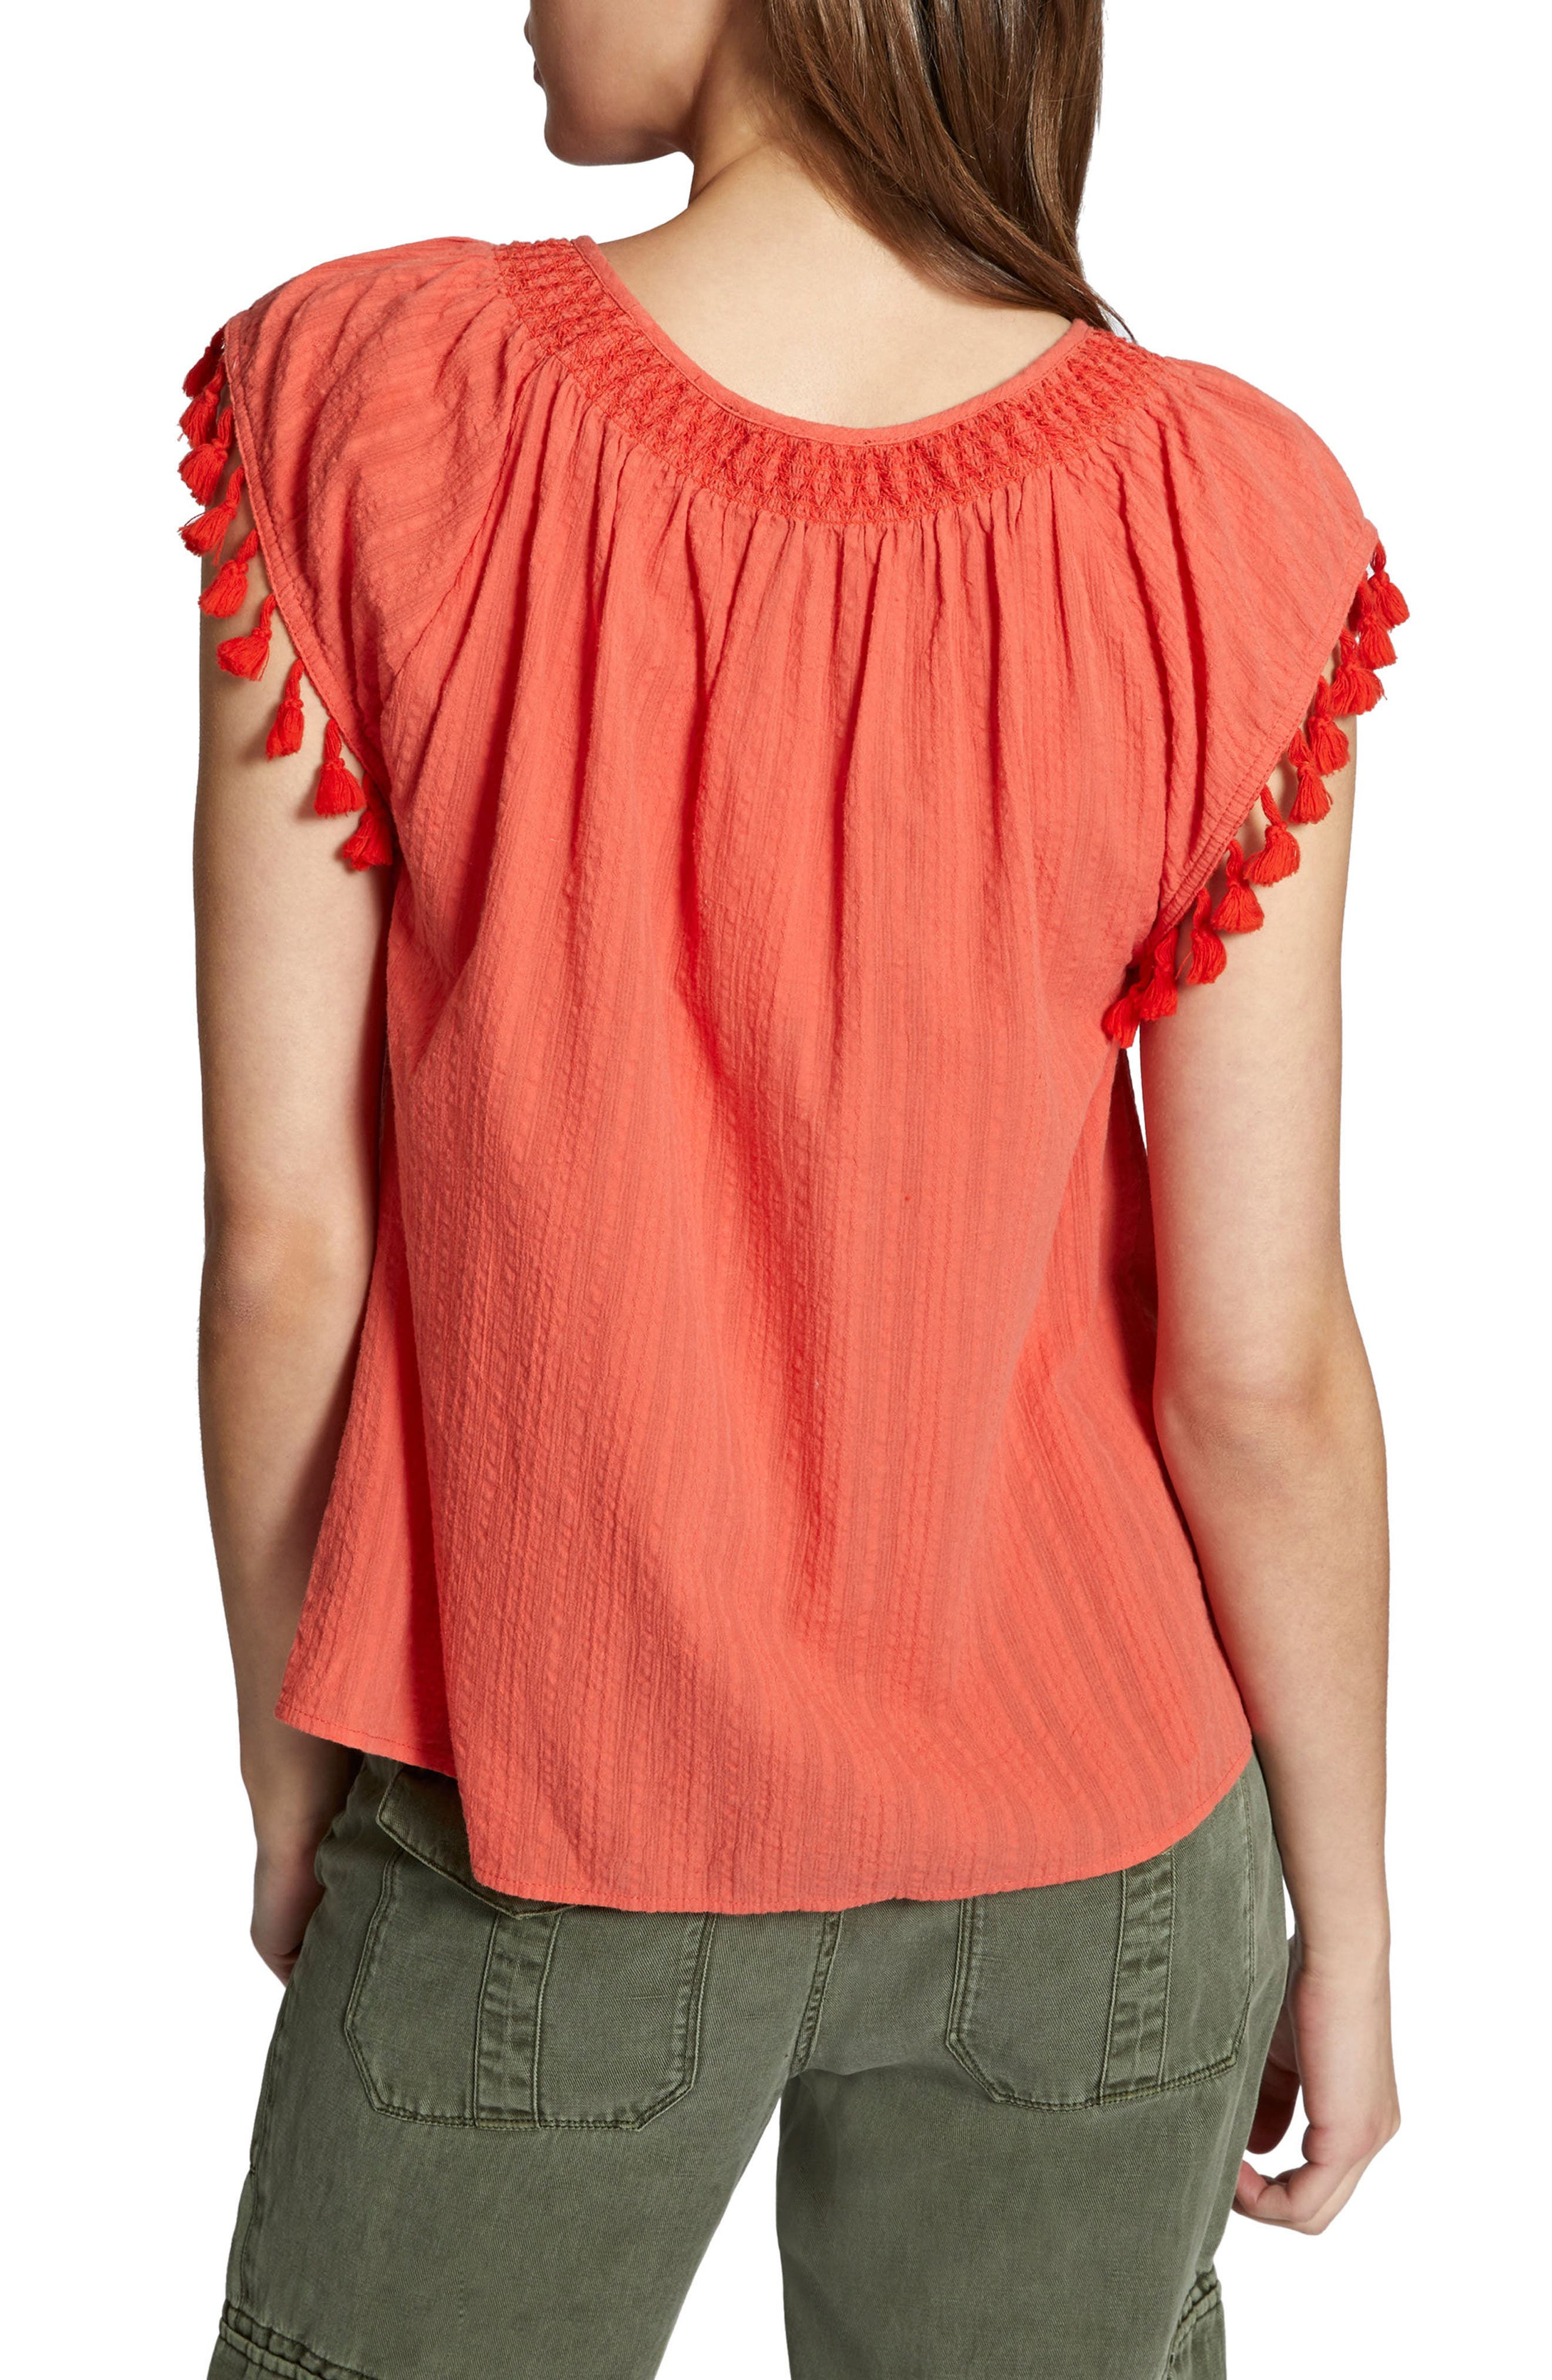 Gobi Tassel Top,                             Alternate thumbnail 2, color,                             Chili